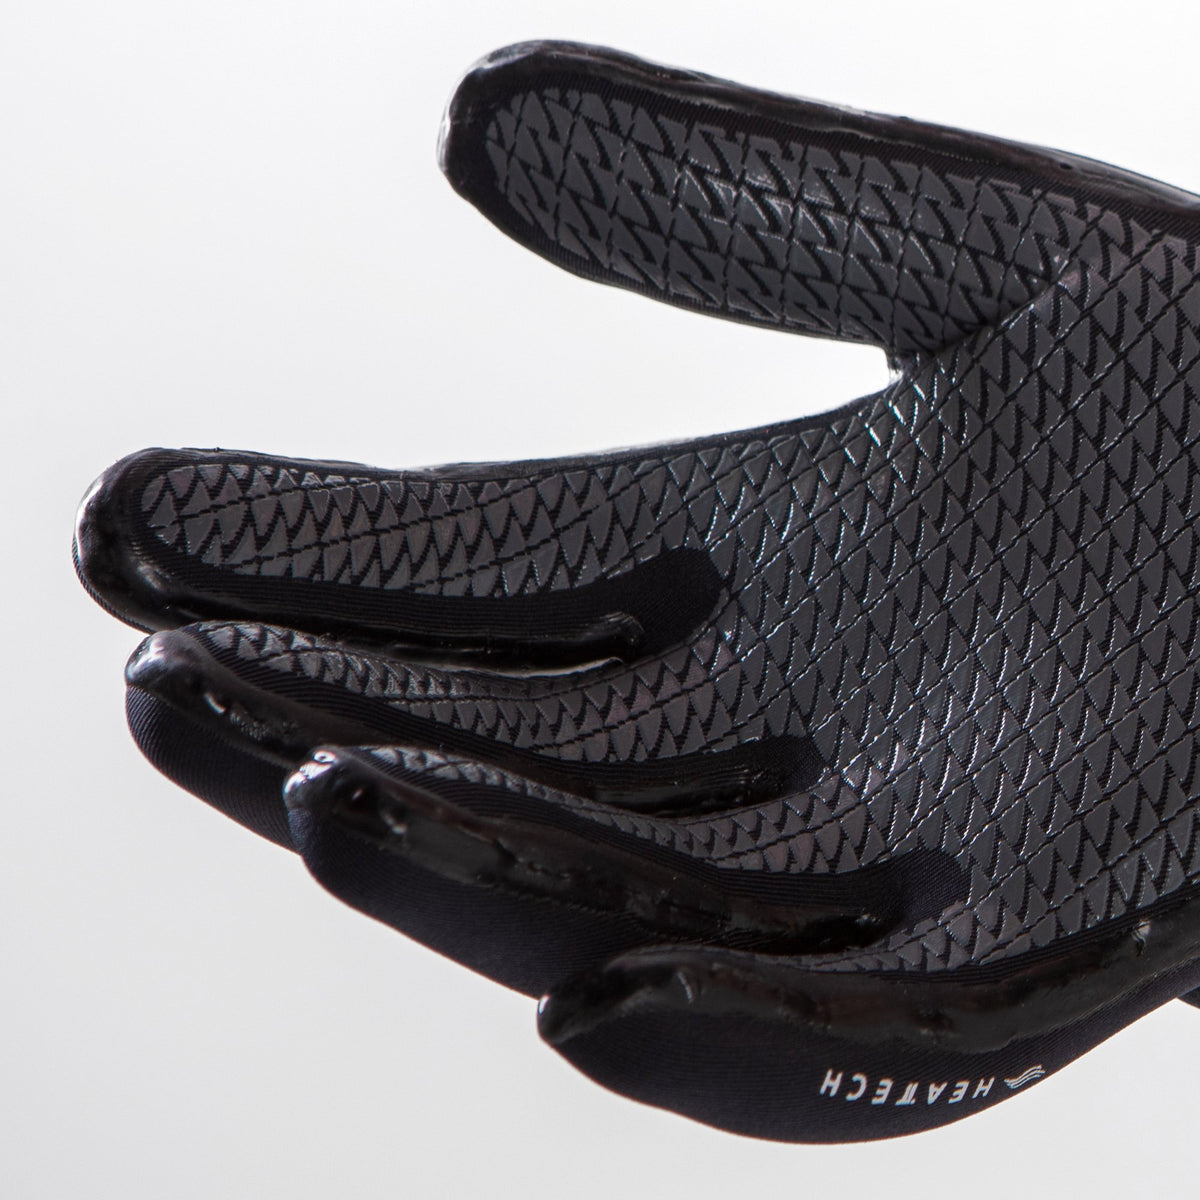 Neoprene Heat-Tech Warmth Swim Gloves finger